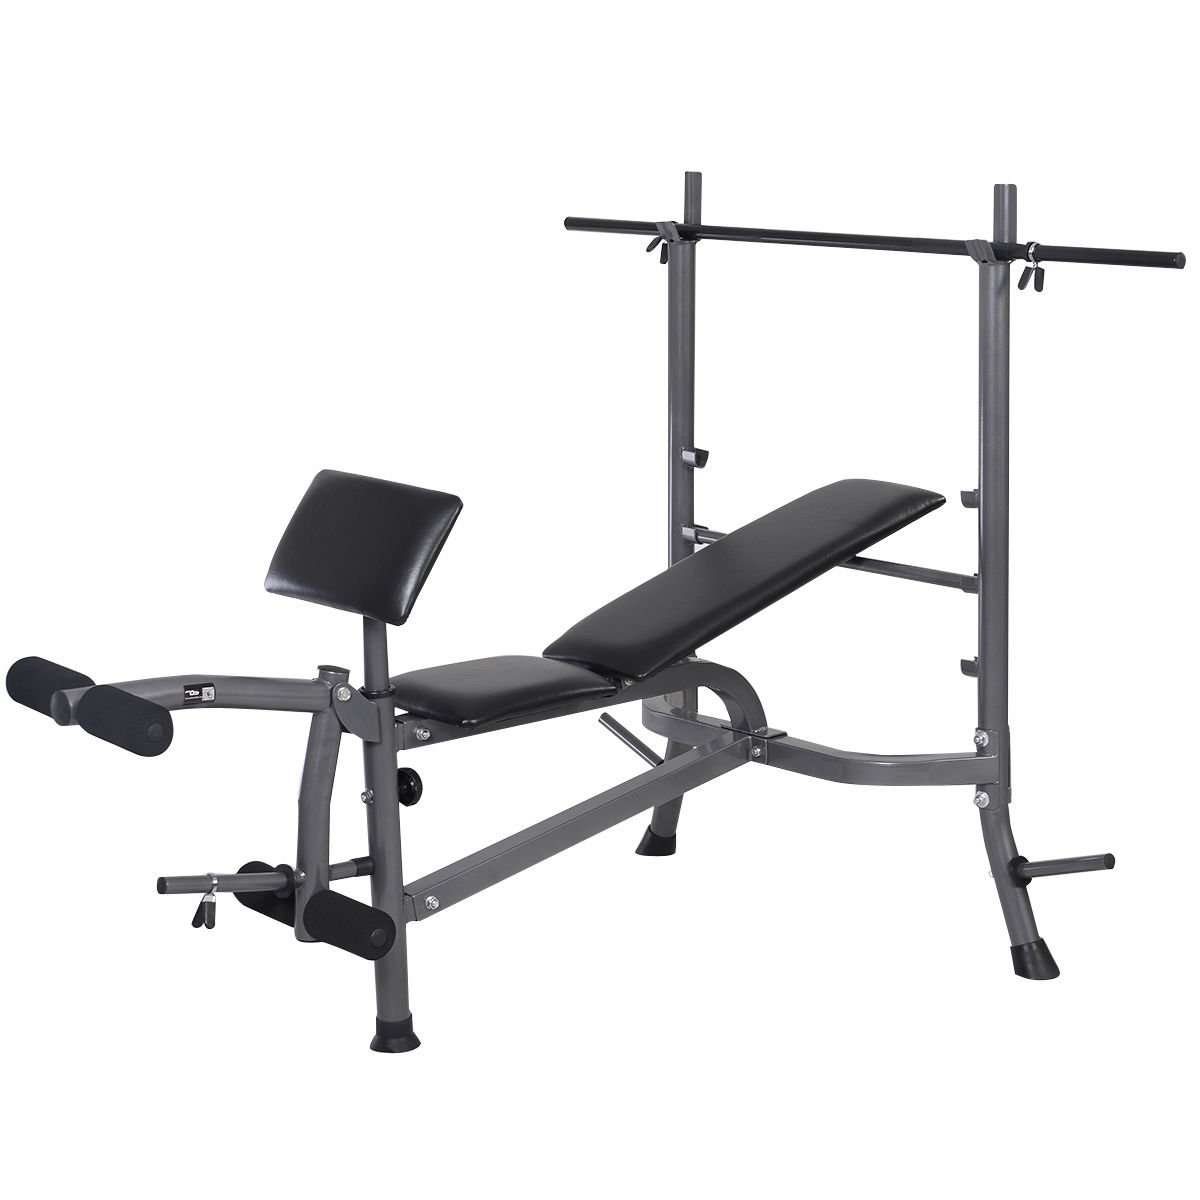 Goplus Standard Weight Bench Incline/ Flat Adjustable with Leg Developer and Dumbbell Bar by Goplus